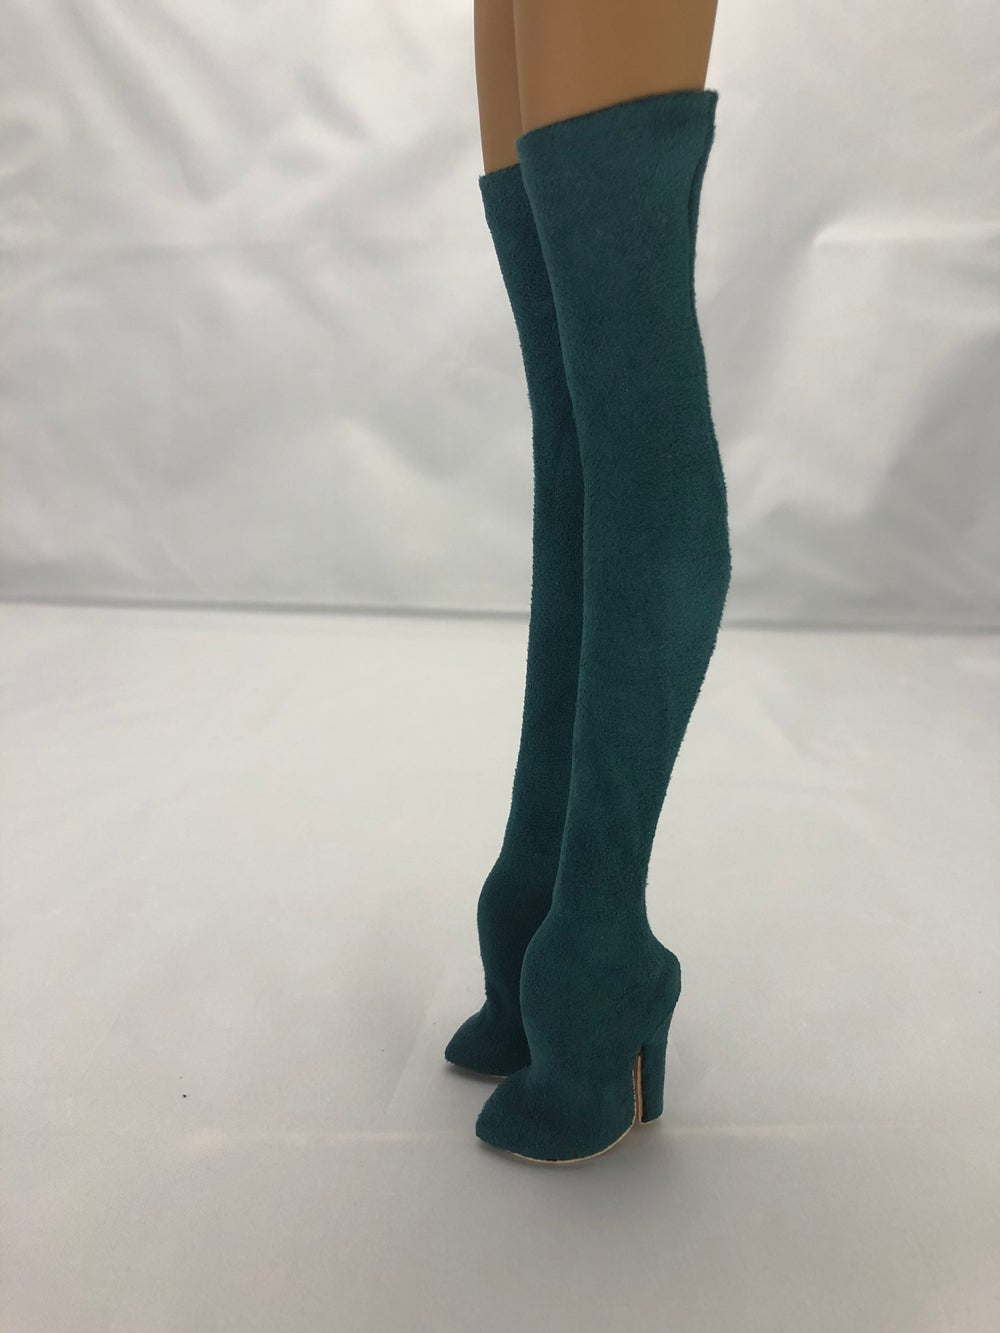 Teal Suede Thigh High Boots: Pidgin Doll P4